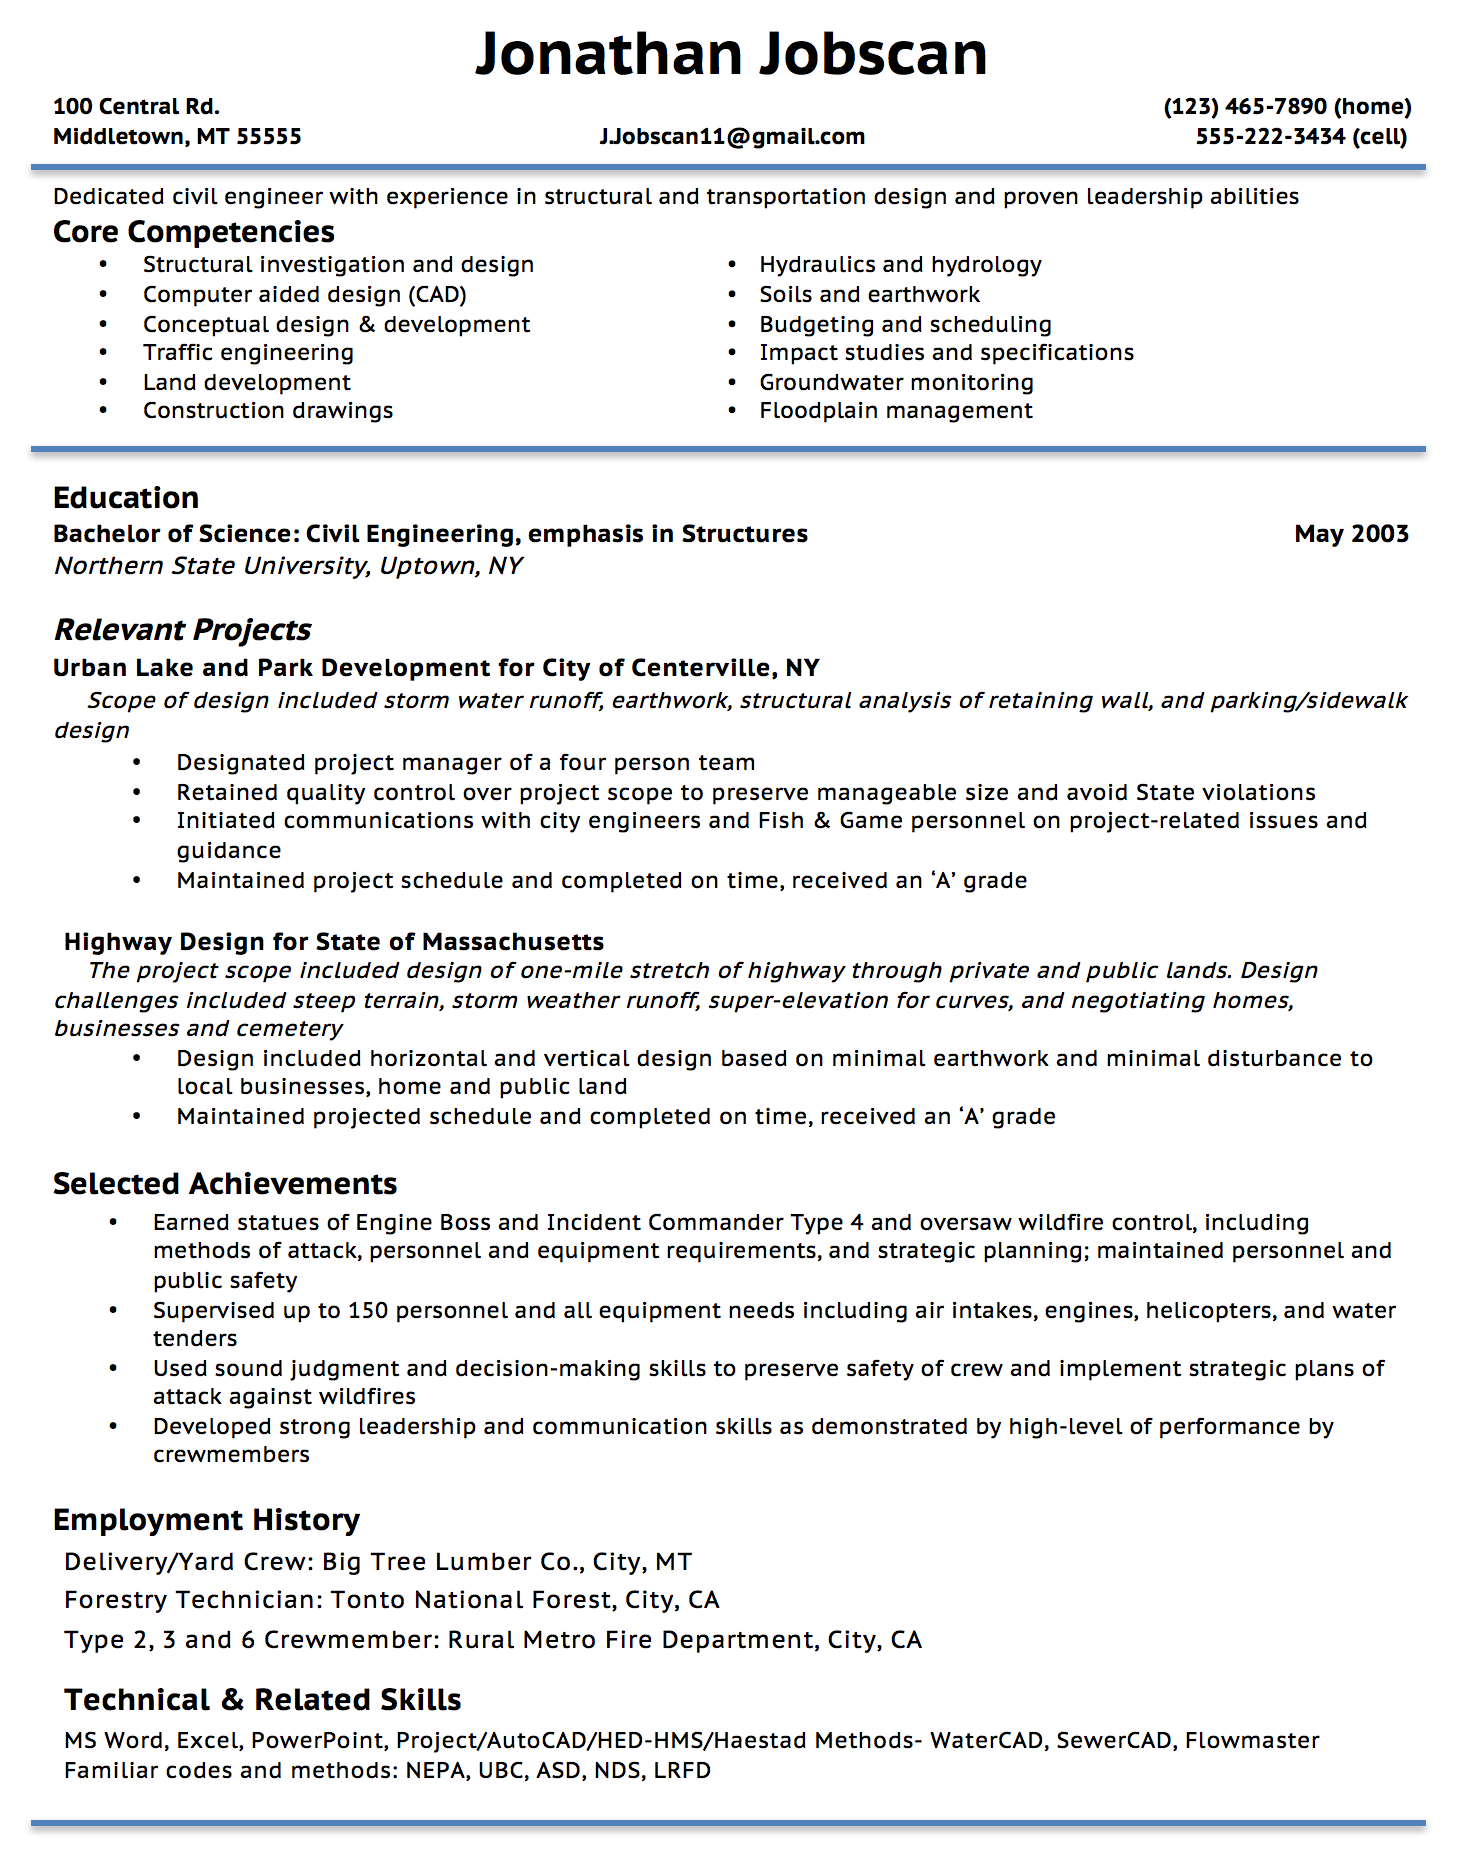 Opposenewapstandardsus  Picturesque Resume Writing Guide  Jobscan With Handsome Example Of A Functional Resume Format With Awesome Set Up A Resume Also Operations Manager Sample Resume In Addition Pictures Of Resume And Free Resume Cover Letters As Well As Warehouse Worker Job Description Resume Additionally Cnc Machinist Resume Samples From Jobscanco With Opposenewapstandardsus  Handsome Resume Writing Guide  Jobscan With Awesome Example Of A Functional Resume Format And Picturesque Set Up A Resume Also Operations Manager Sample Resume In Addition Pictures Of Resume From Jobscanco